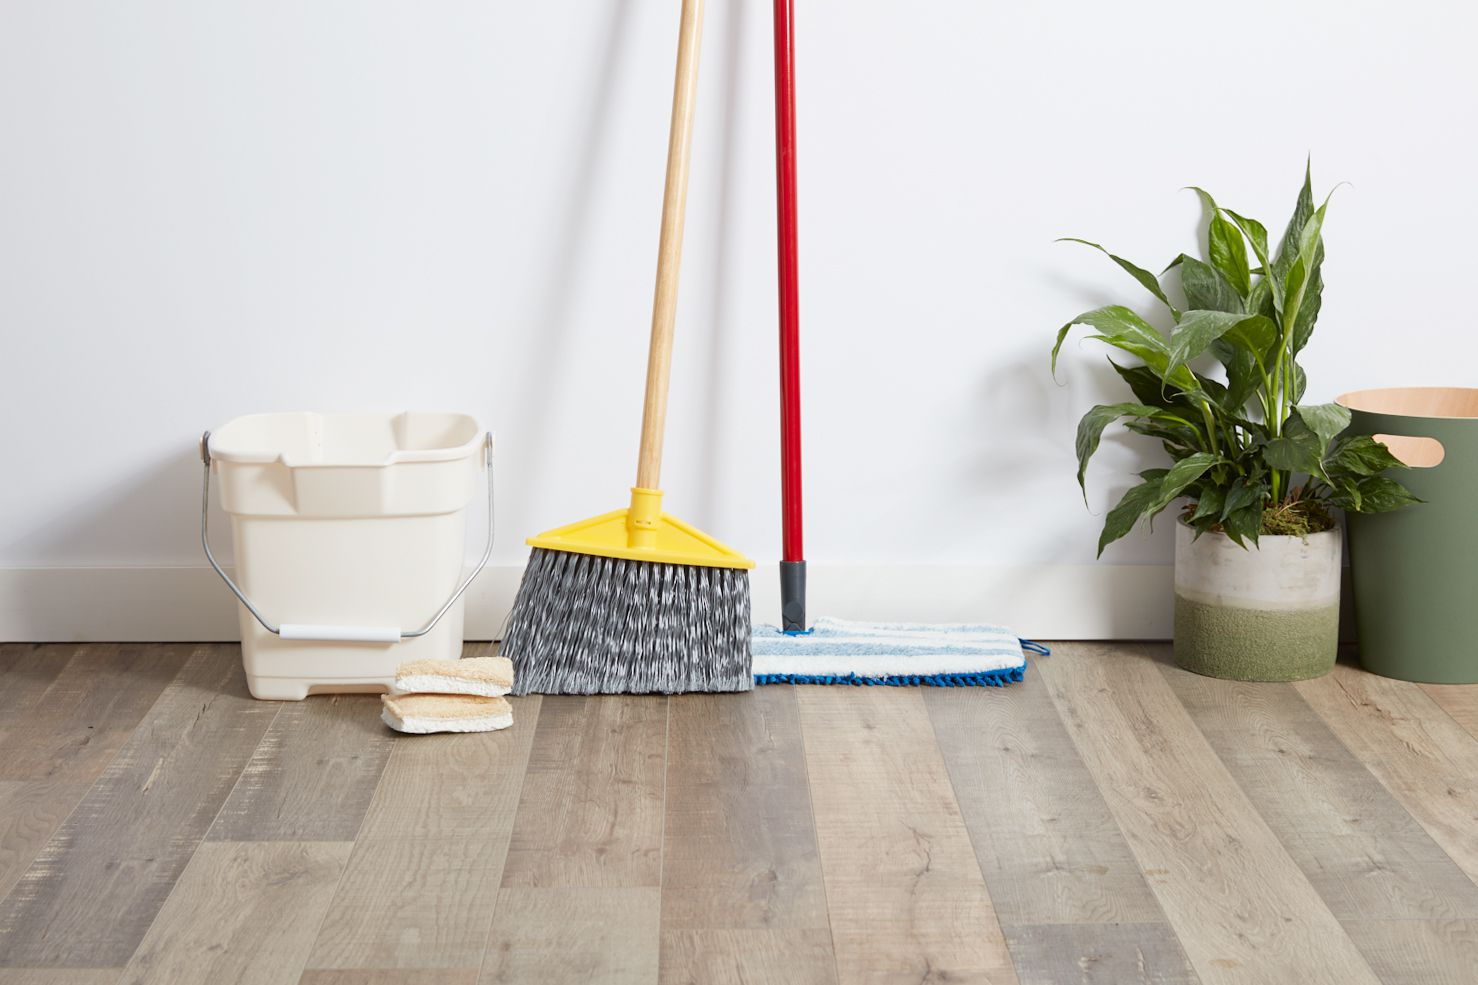 How To Clean Laminate Wood Floors, What's Best To Clean Laminate Flooring